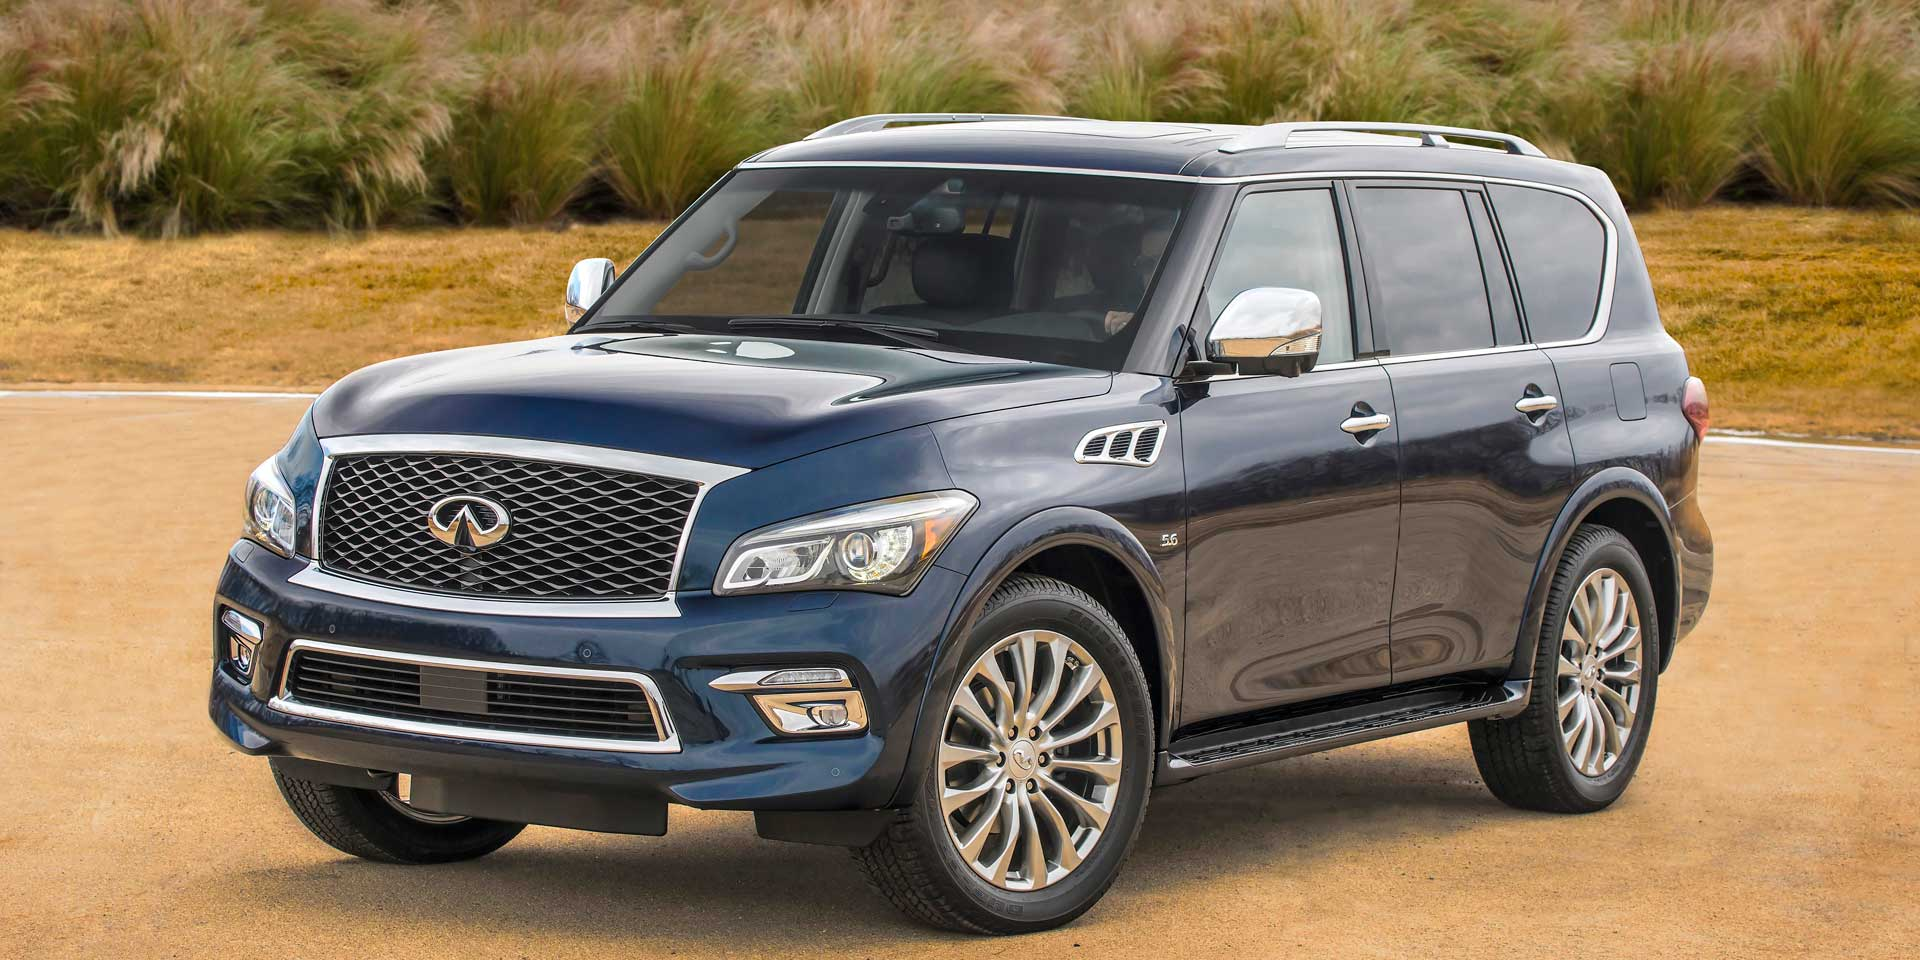 Used Cars For Sale New Cars For Sale Car Dealers Cars Chicago - Infiniti dealers chicagoland